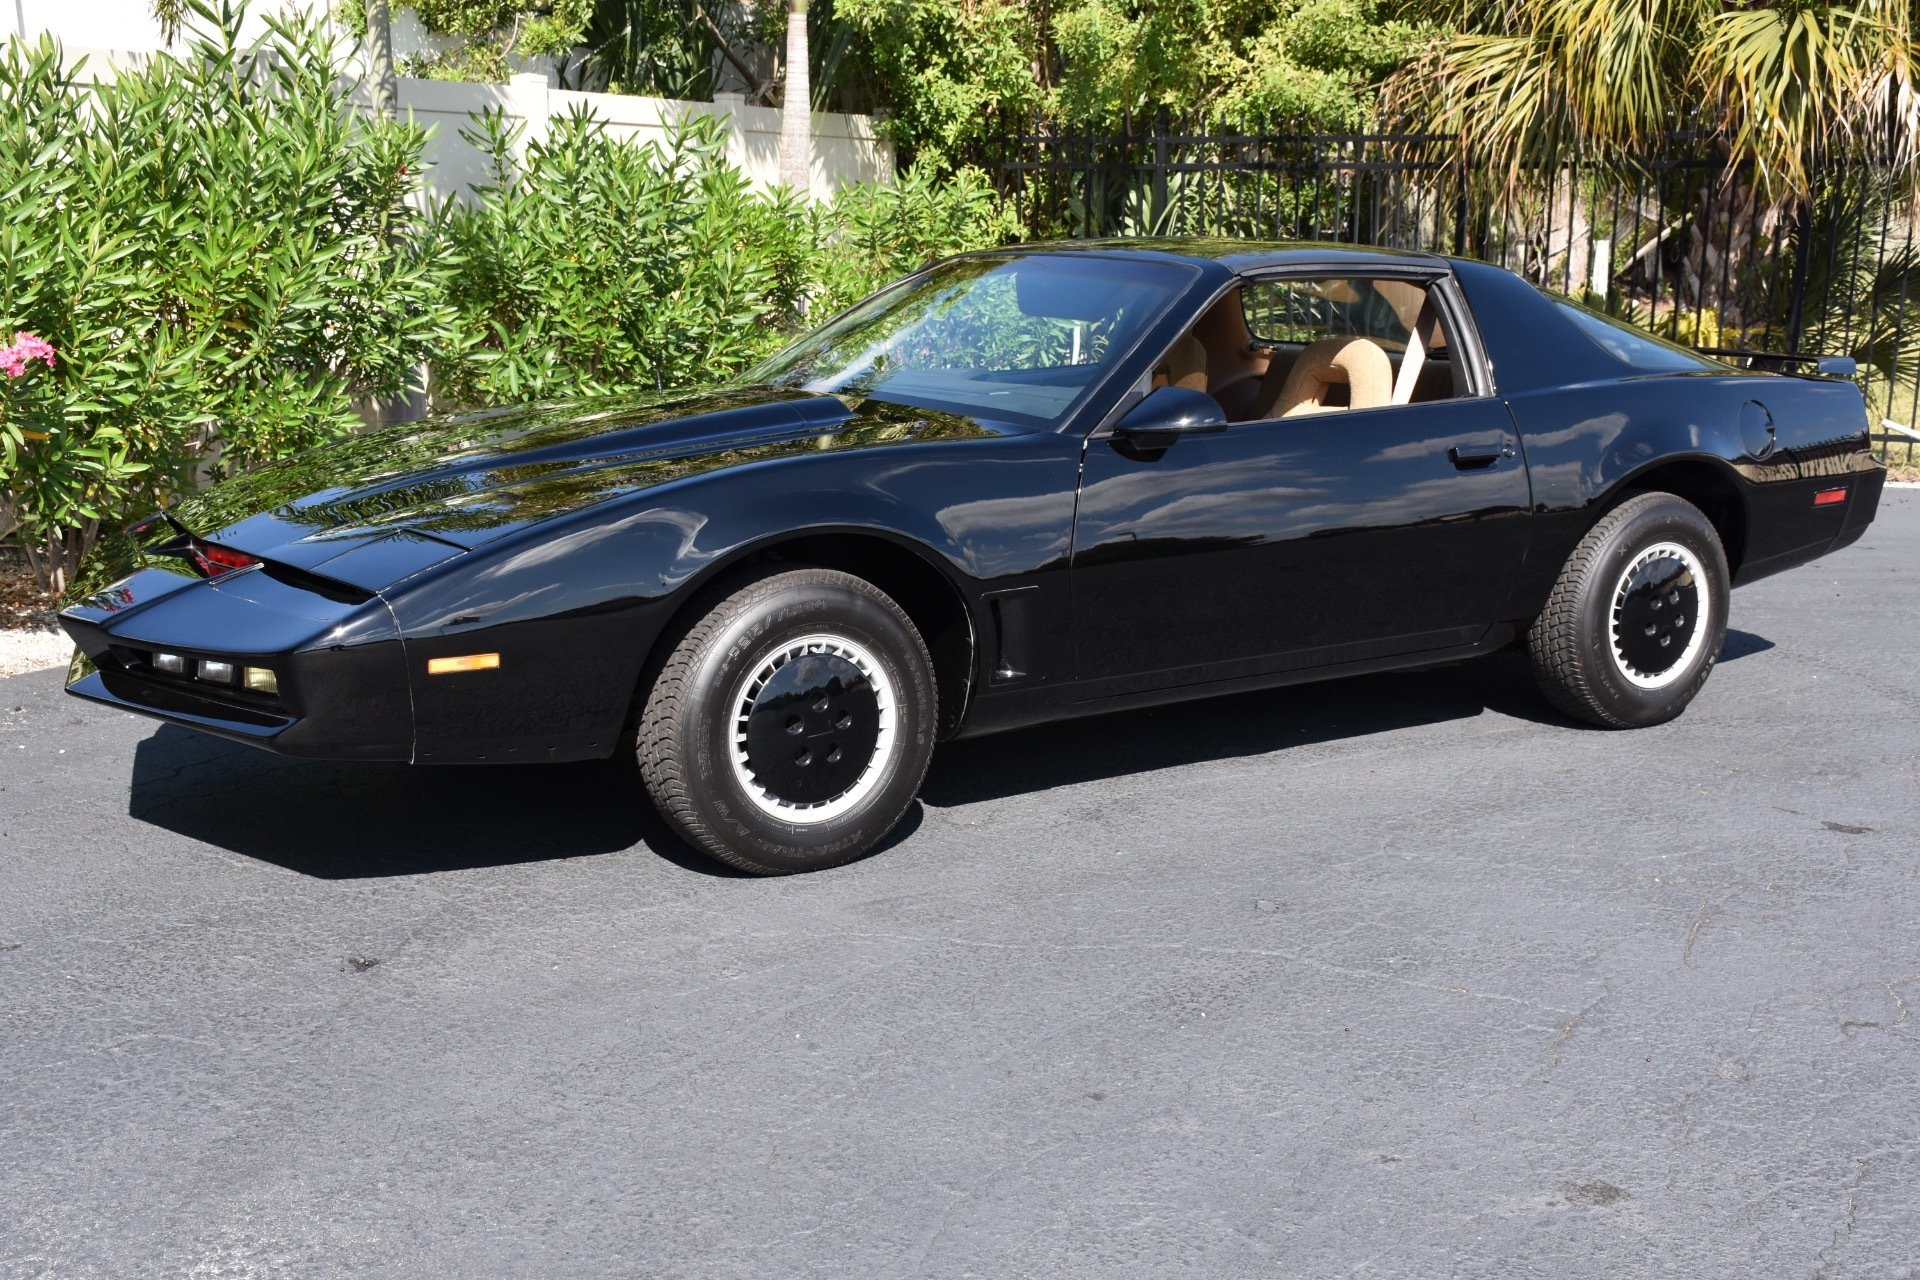 4. Knight Rider_1989-Pontiac Trans Am